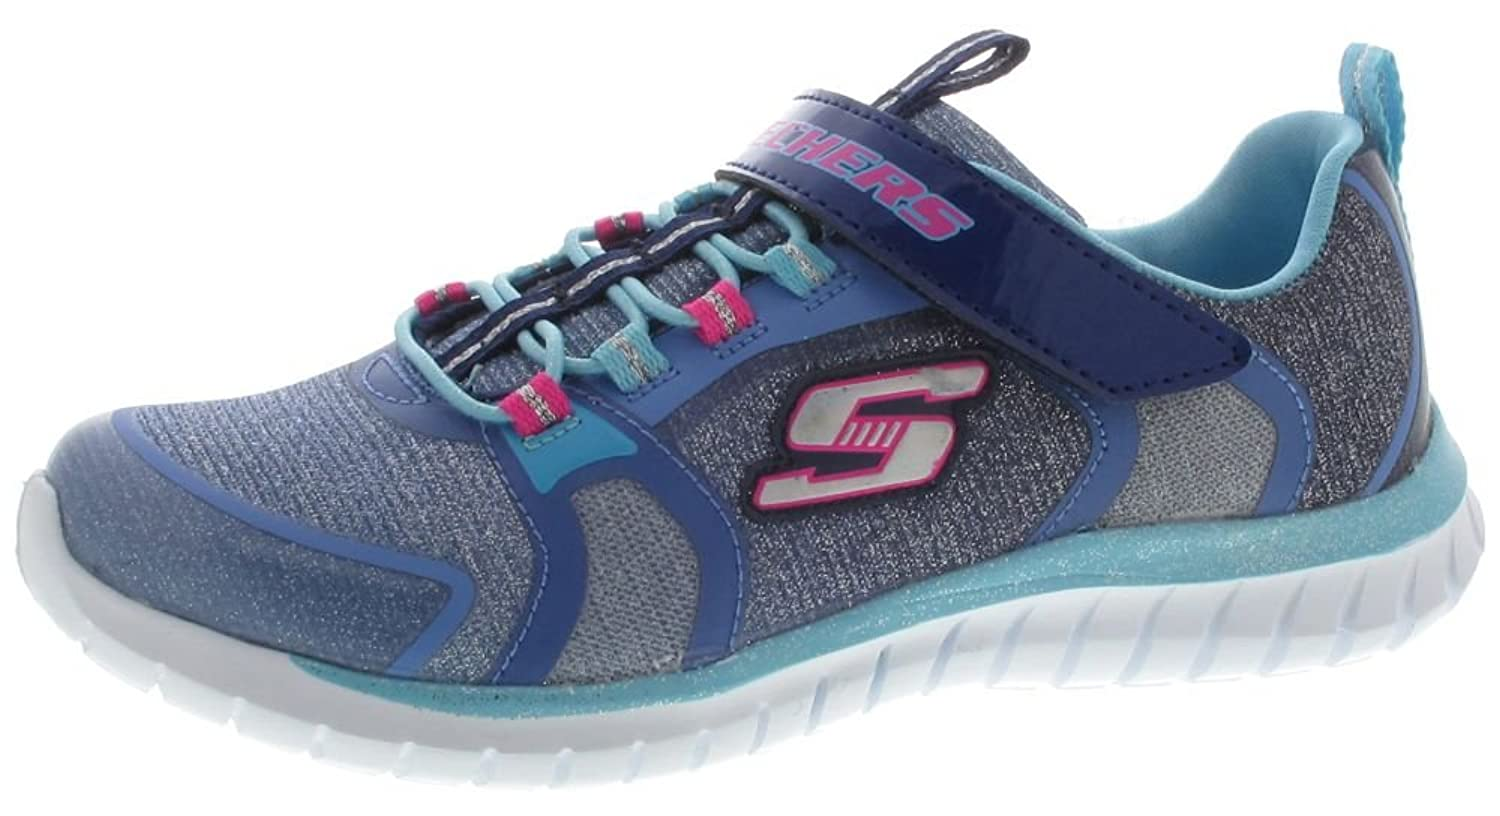 Skechers Empire Spring Glow Slipper schwarz um 19